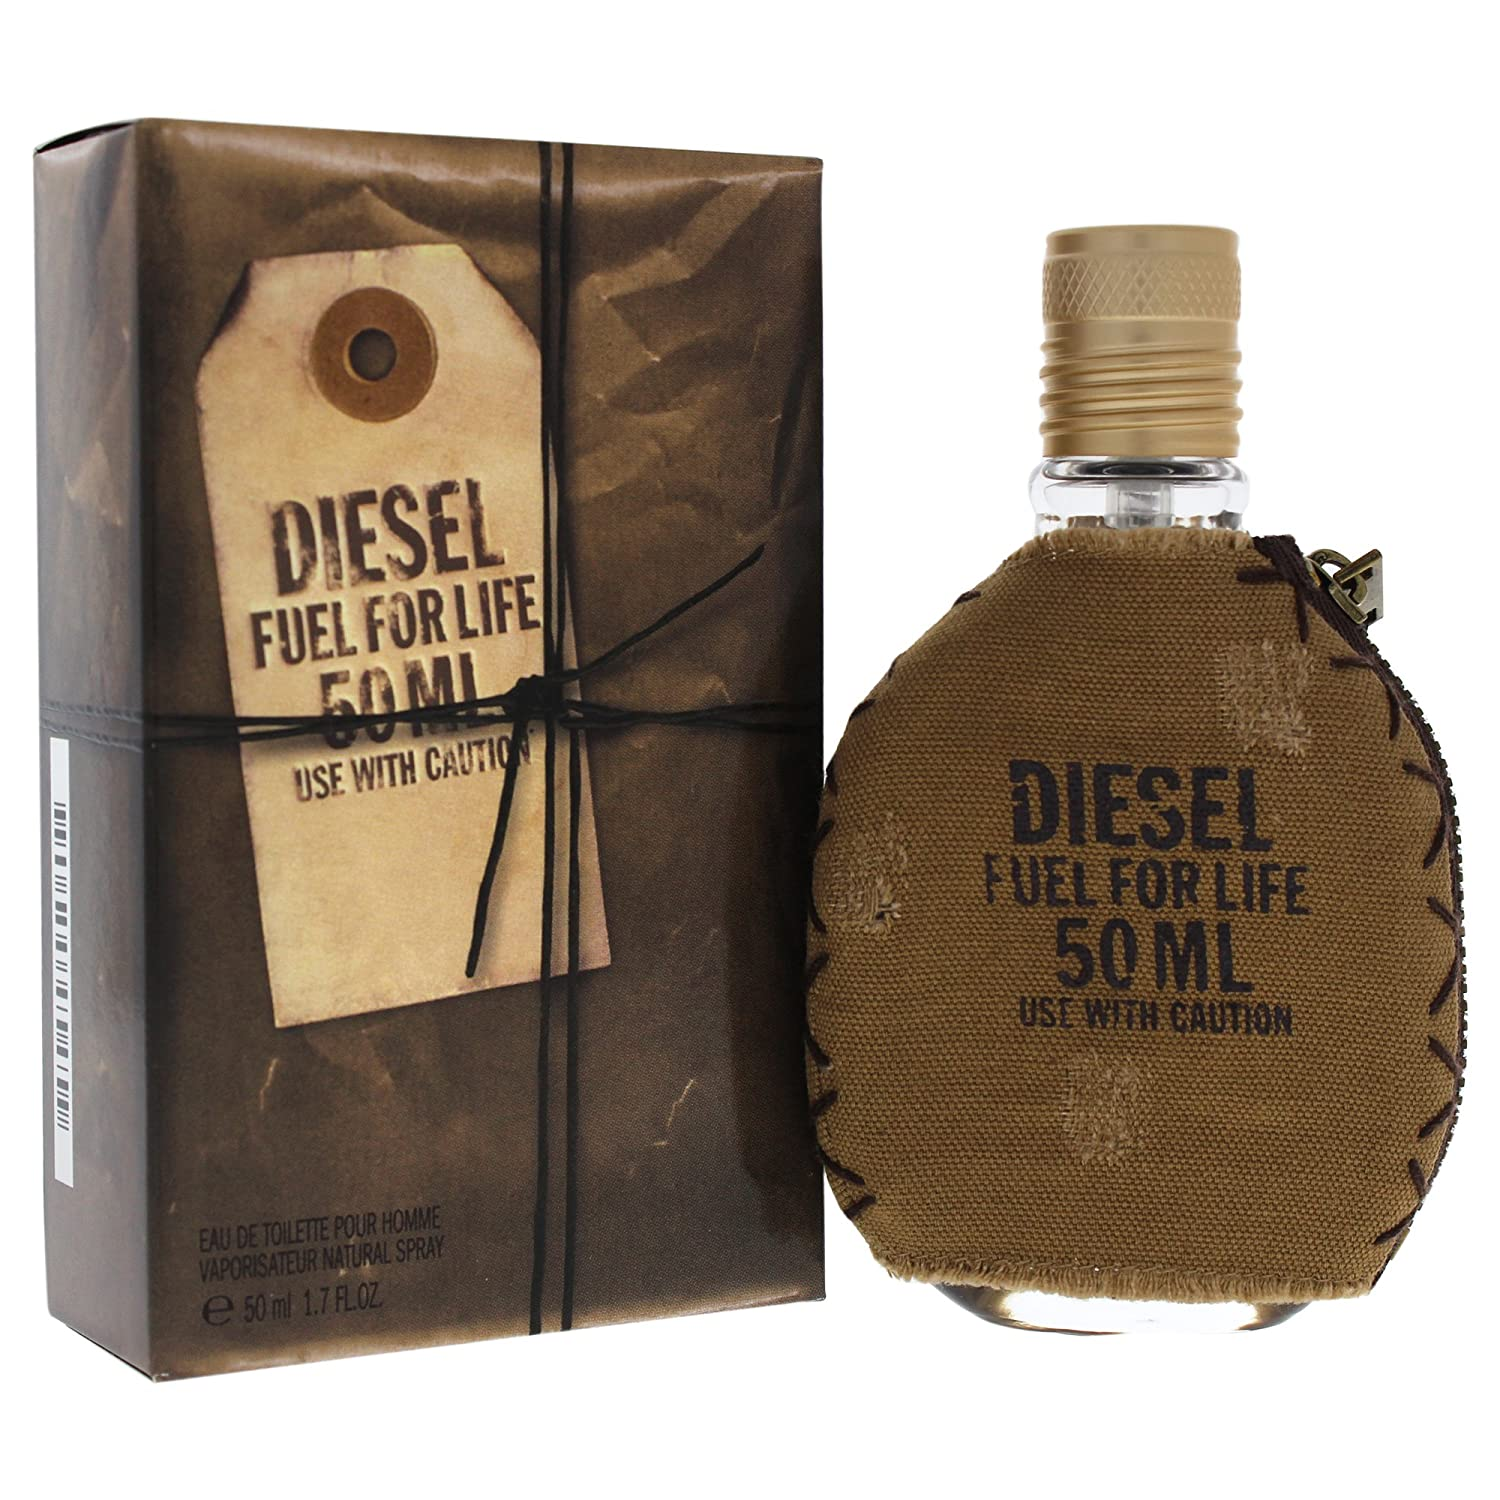 Diesel Fuel for Life for Men 1.7-Ounce Eau De Toilette Spray DIESEL-386442 P-D1-404-50_-50ml